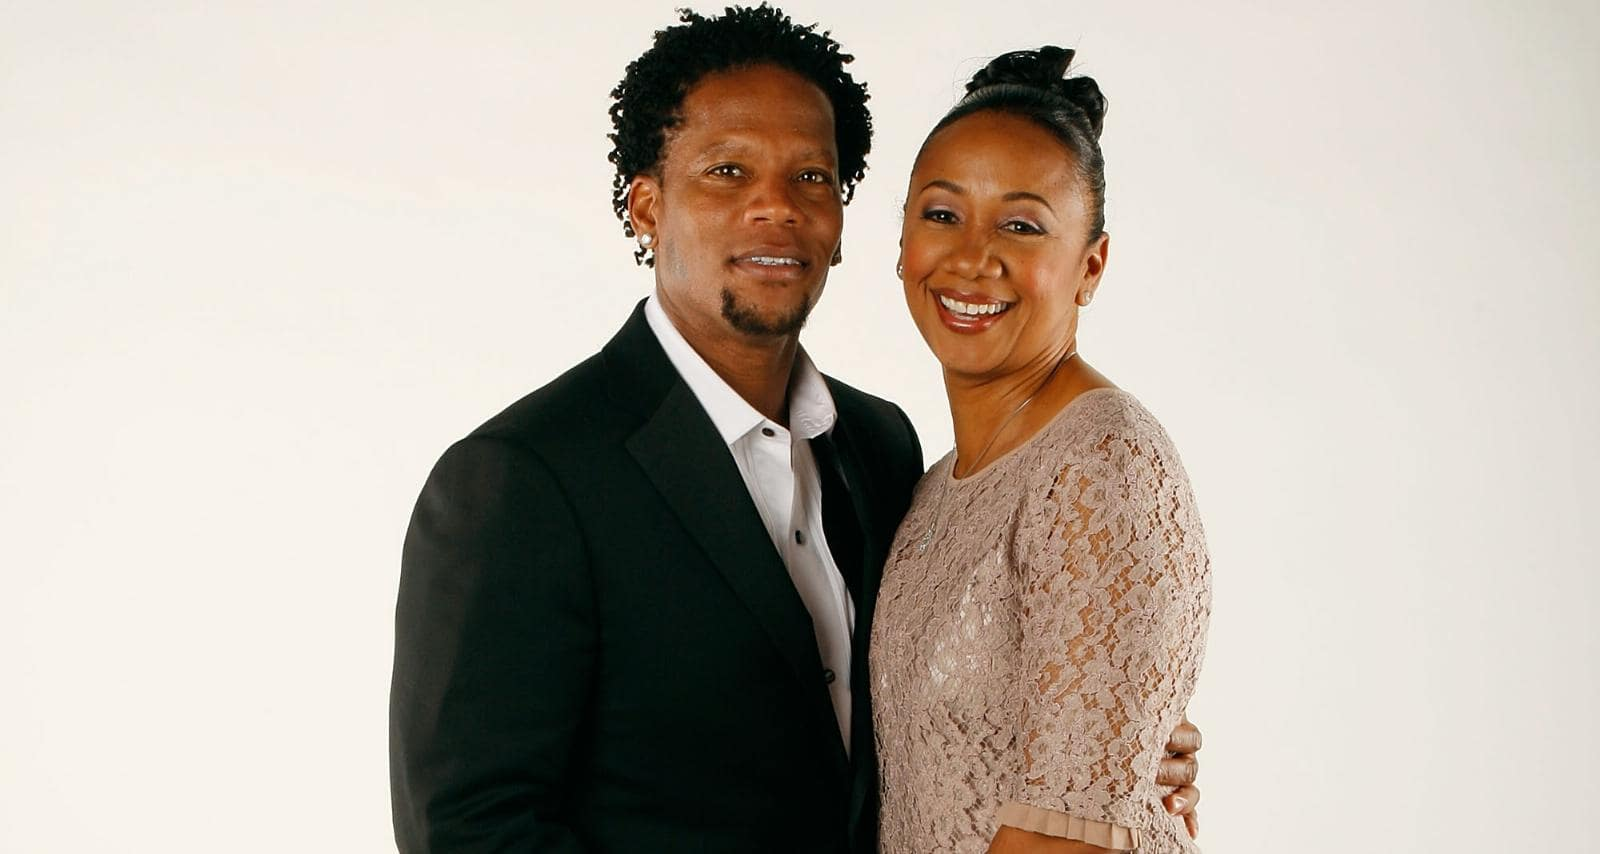 Ladonna Hughley Wiki, Age, Family, Parents, Kids and Facts About DL Hughley's Wife